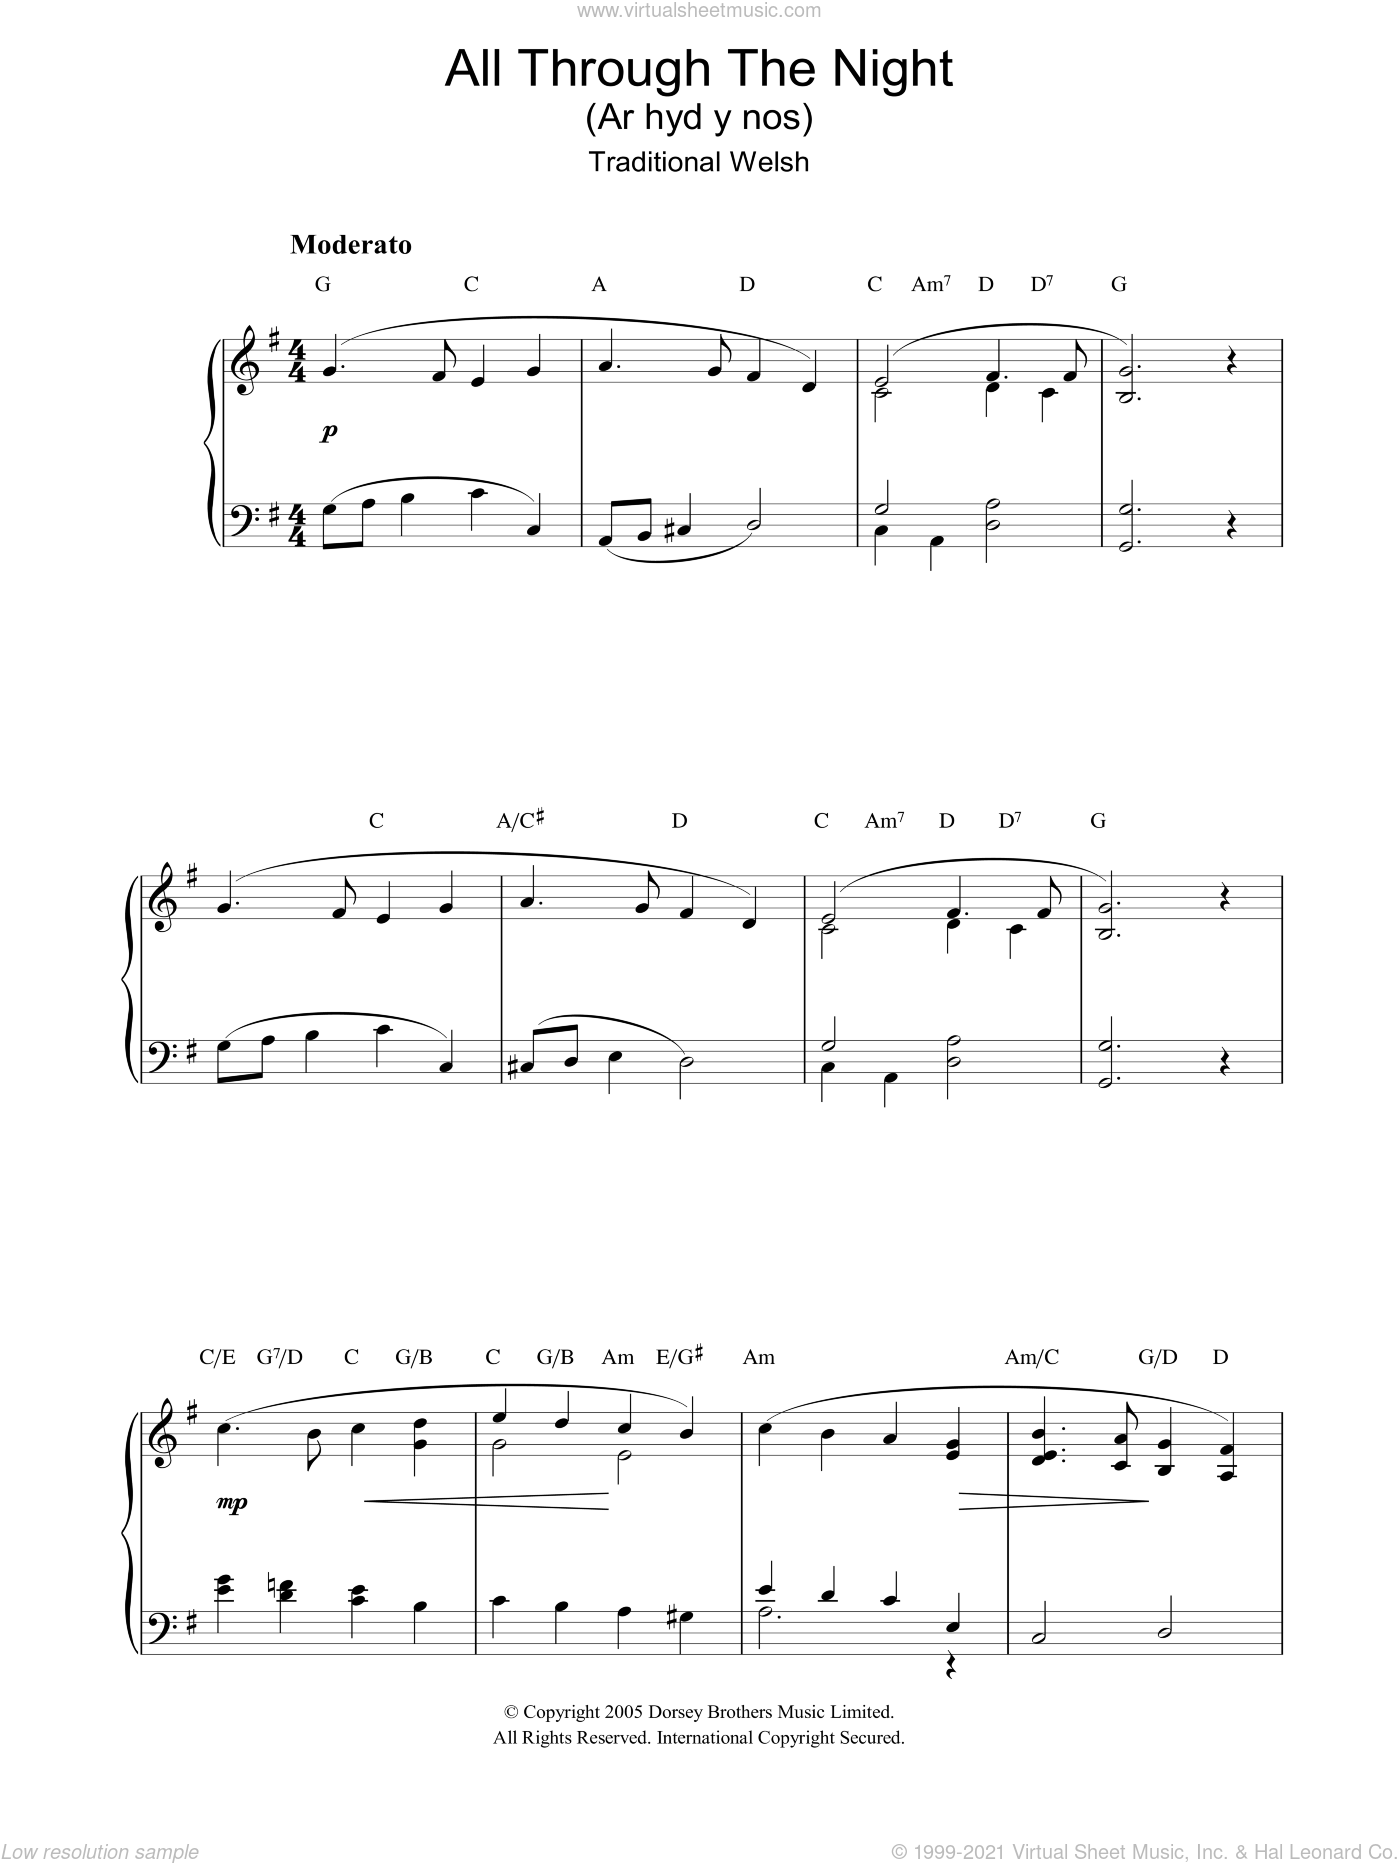 All Through The Night sheet music for piano solo, intermediate skill level